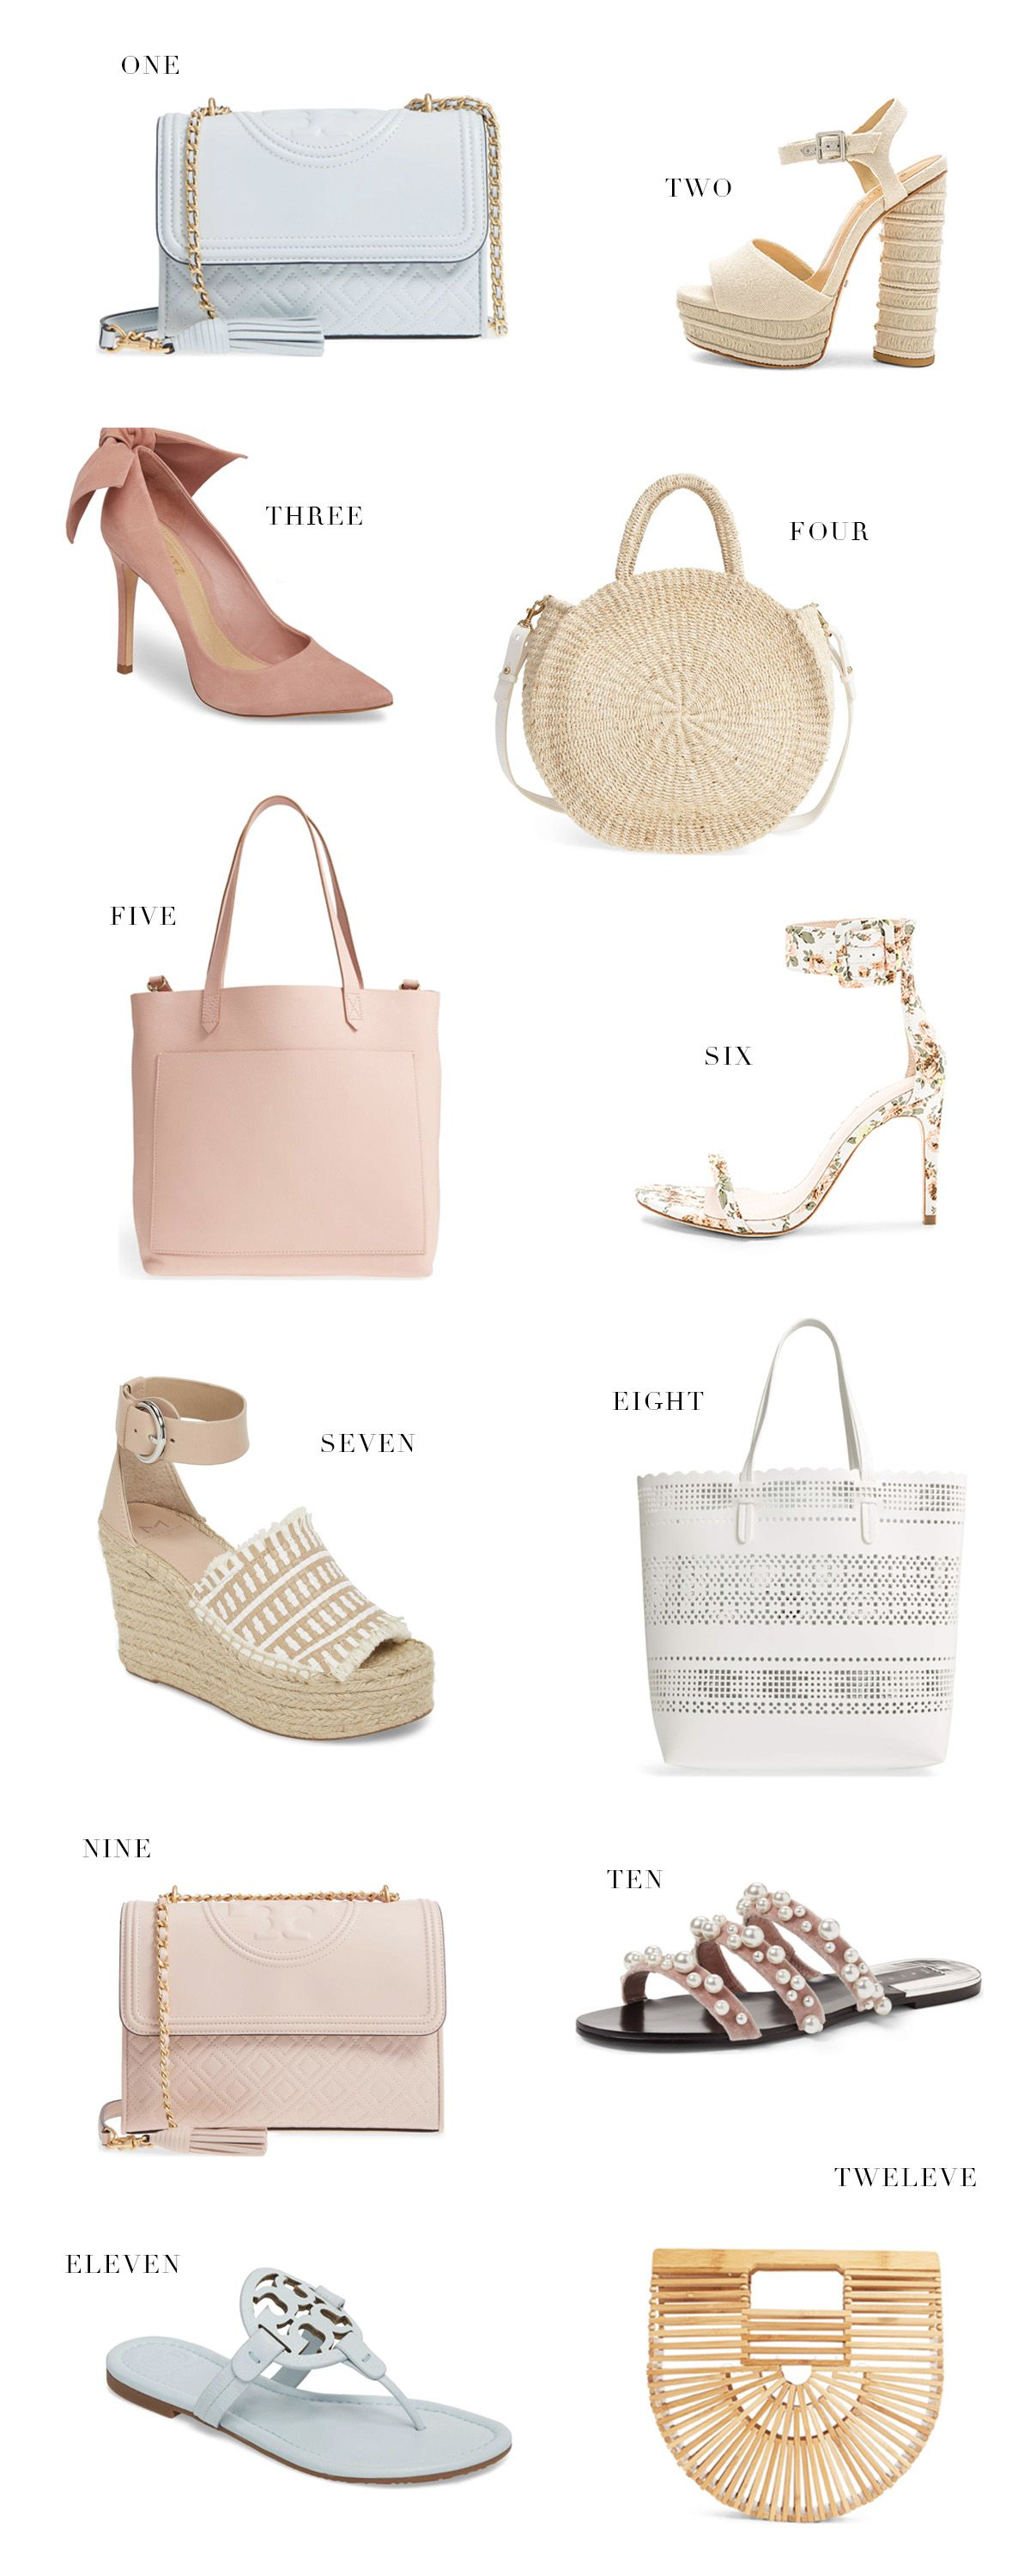 667bcf0319f2c My Top Picks for Spring Bags and Shoes... - Pink Peonies by Rach Parcell